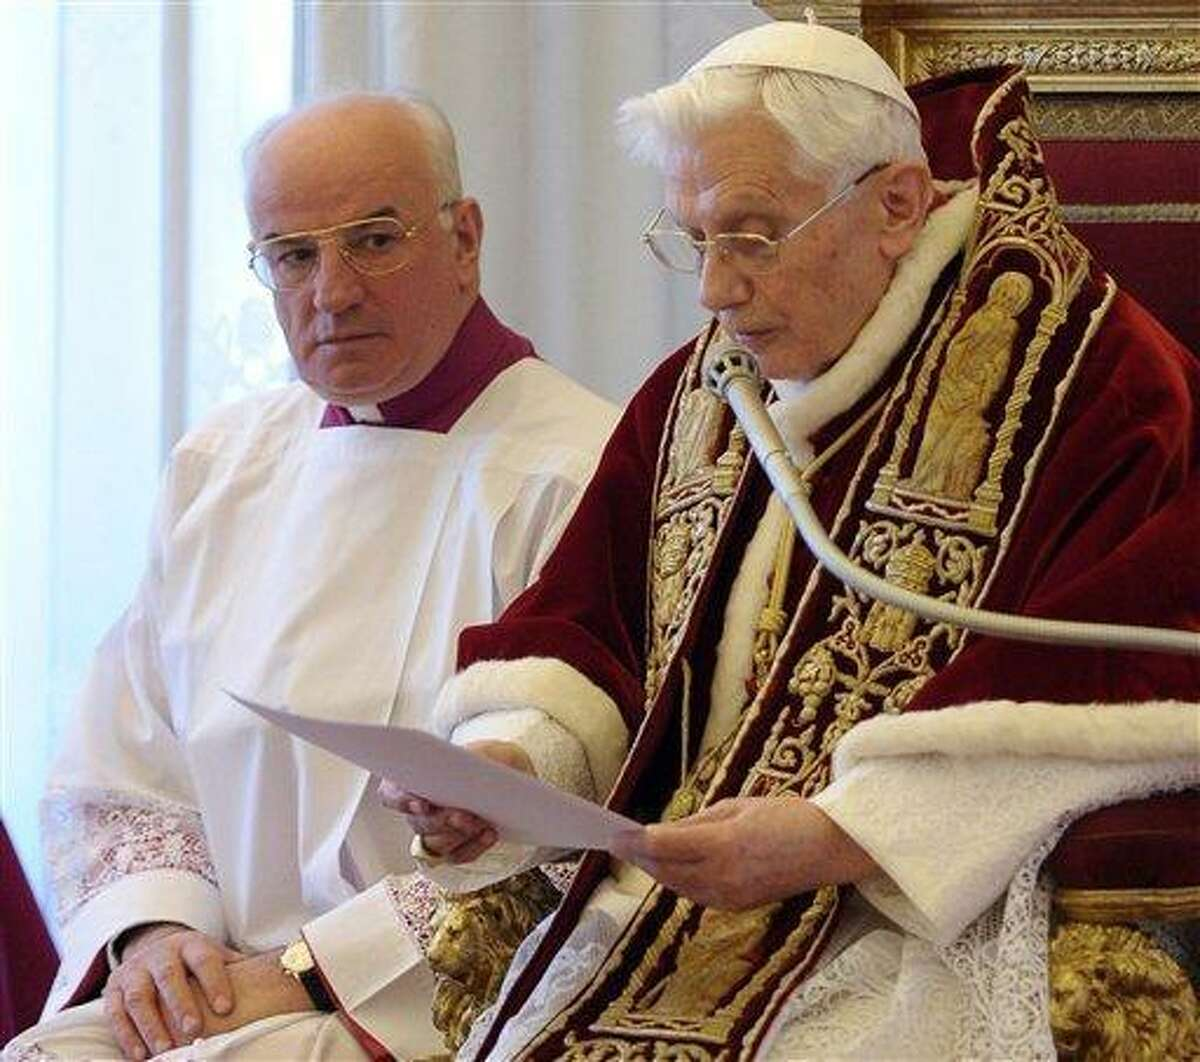 In this photo provided by the Vatican newspaper L'Osservatore Romano, Mons. Franco Comaldo, left, a pope aide, looks at Pope Benedict XVI as he reads a document in Latin where he announces his resignation, during a meeting of Vatican cardinals, at the Vatican, Monday, Feb. 11, 2013. Benedict XVI announced Monday that he would resign Feb. 28 - the first pontiff to do so in nearly 600 years. The decision sets the stage for a conclave to elect a new pope before the end of March. (AP Photo/L'Osservatore Romano, ho)